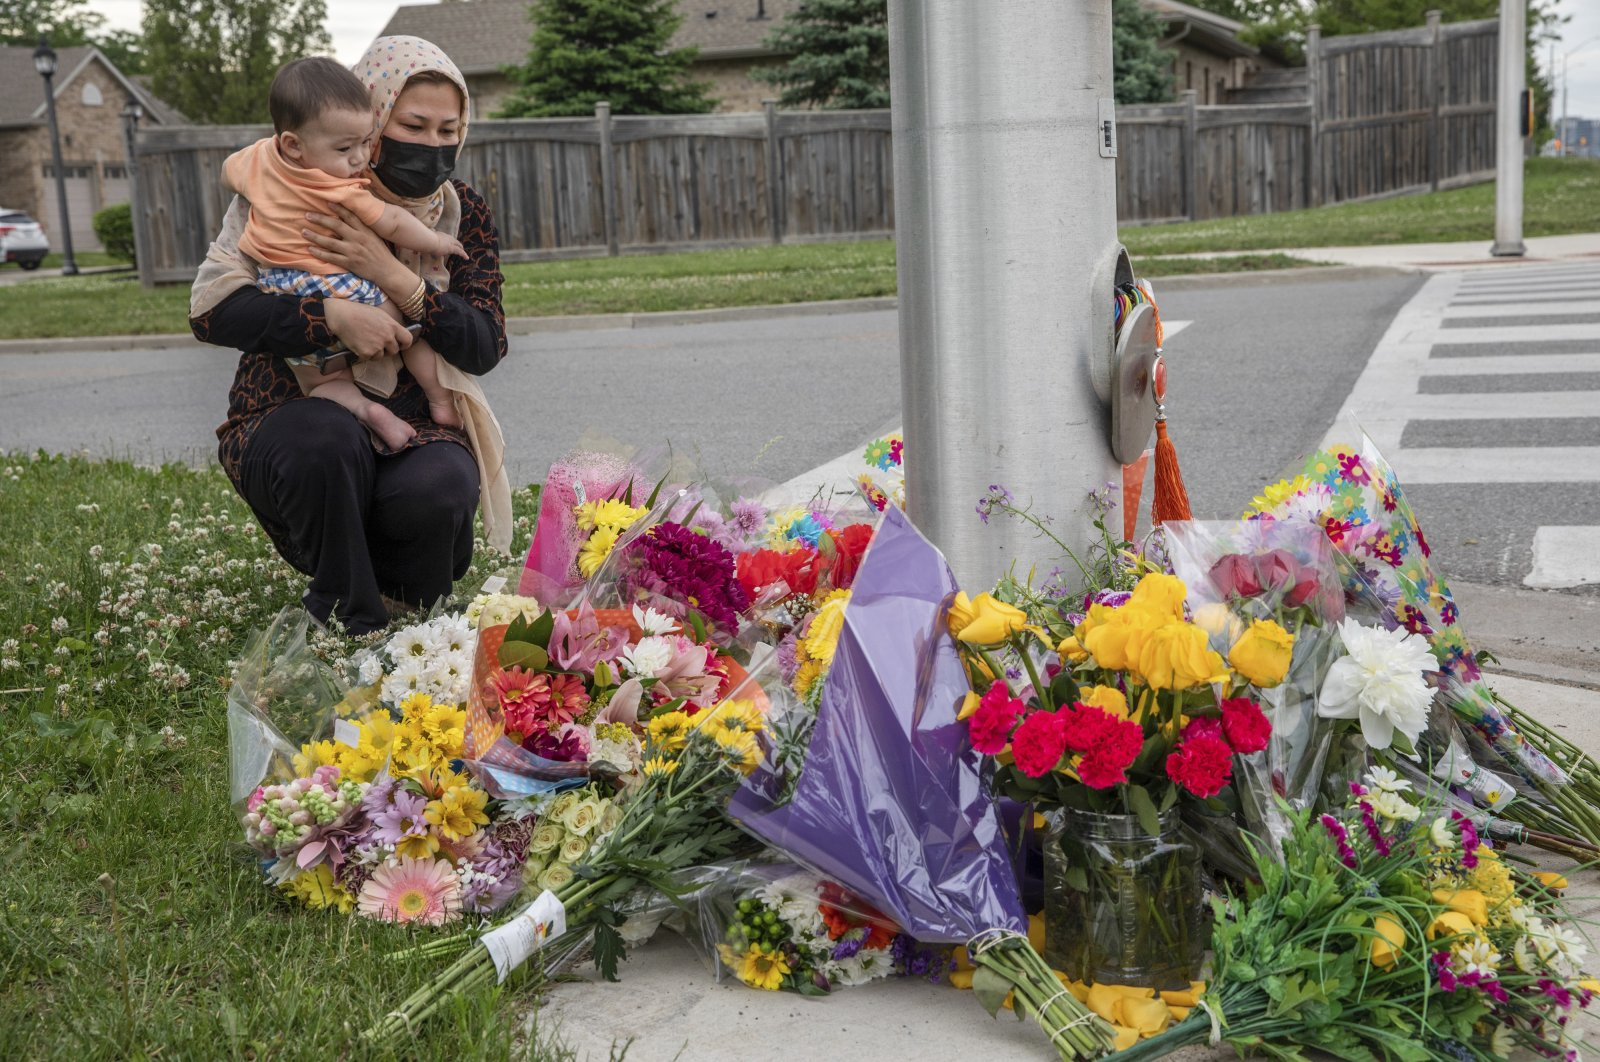 Nafisa Azima and her daughter Seena Safdari attend a memorial at the location where a family of five was hit by a driver, in London, Ontario, Monday, June 7, 2021. (AP Photo)